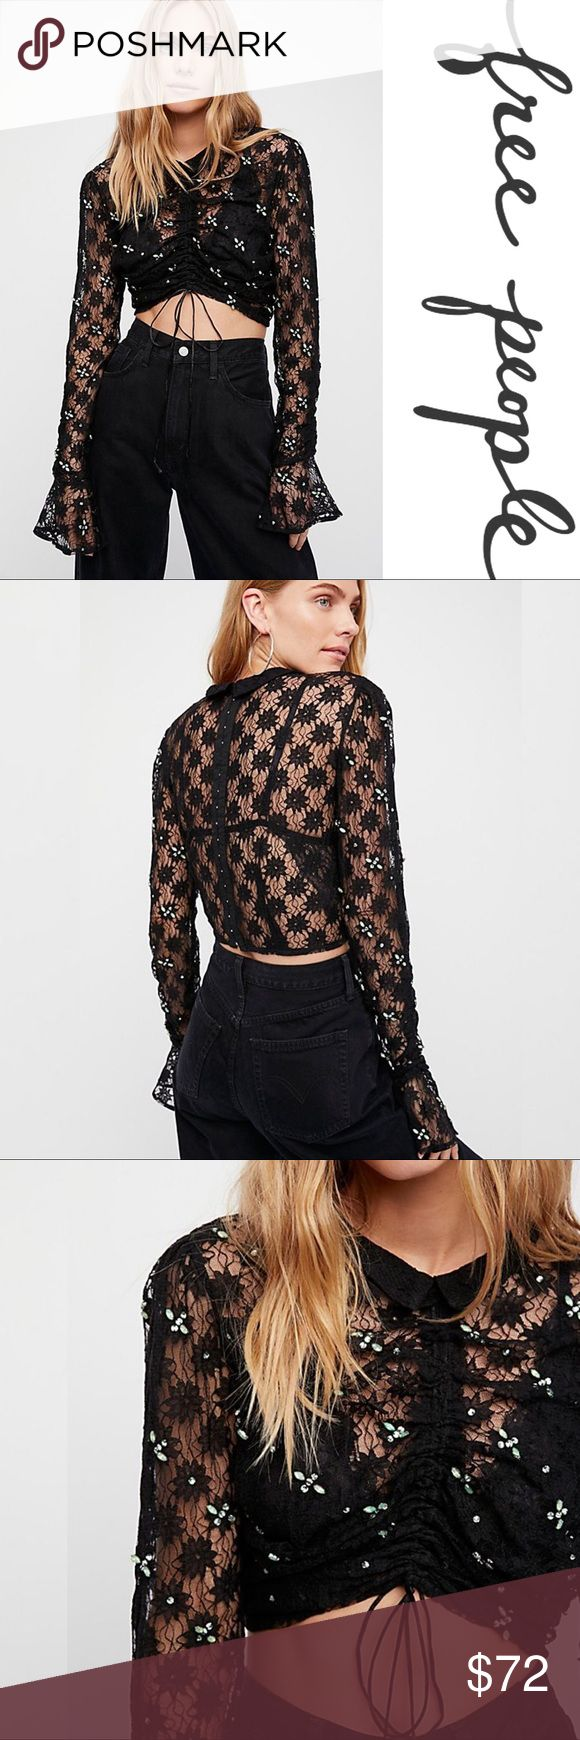 NWT Free People Dazzle Top ➖NWT ➖BRAND: Free People ➖SIZE: Medium ➖STYLE: Sheer lace long sleeve top featuring shimmering embellishments allover, a cute cropped shape and a femme feel. Features : Front ruching : Back hook and eye closures : Flared Bell sleeve cuffs  ❌ NO TRADE  Mesh  Entropycat Free People Tops Crop Tops